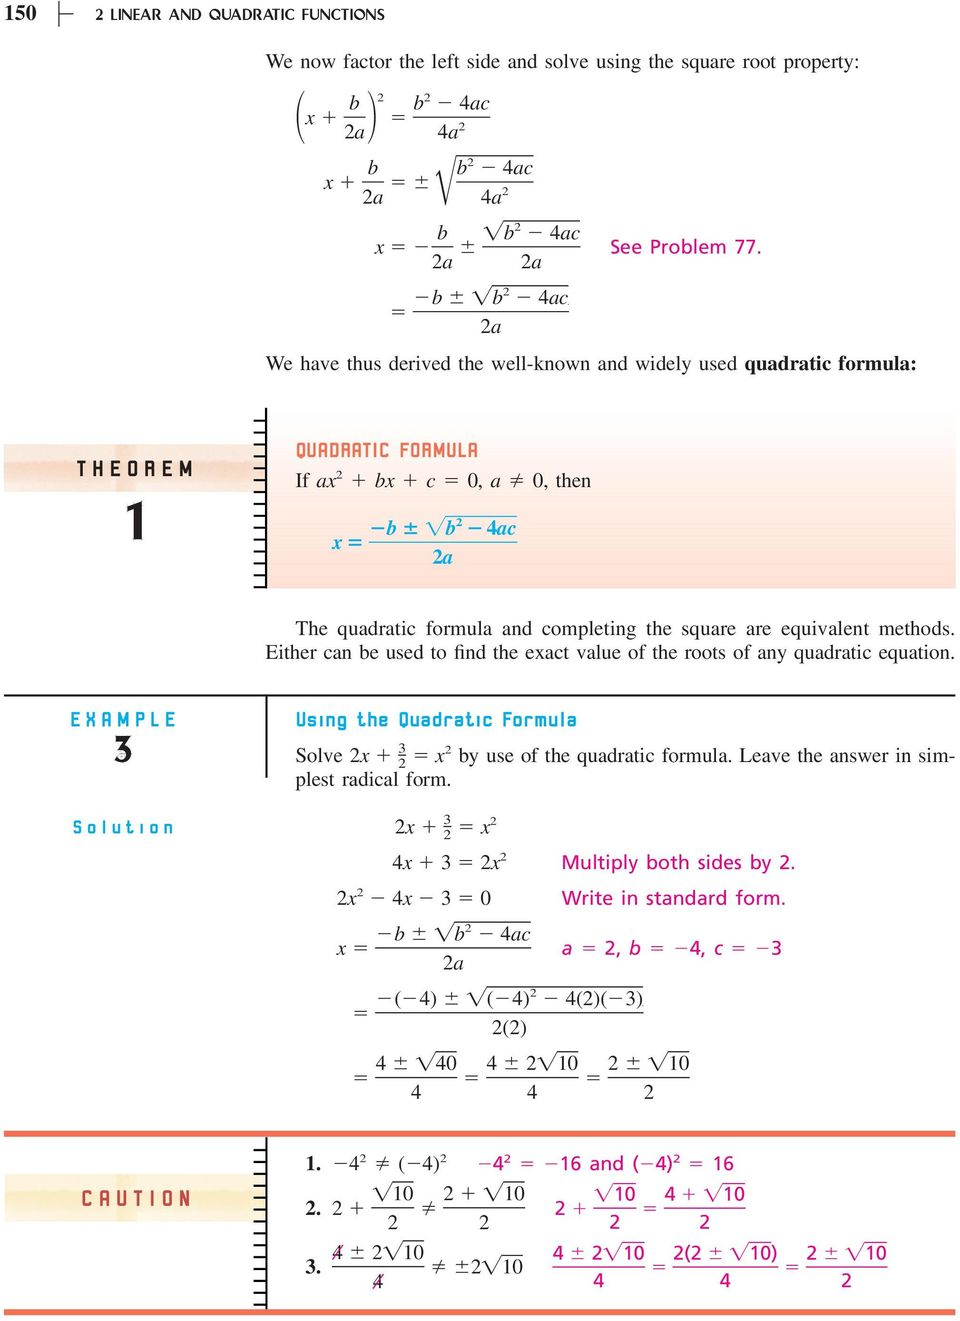 equivalent methods. Either can be used to find the exact value of the roots of any quadratic equation.